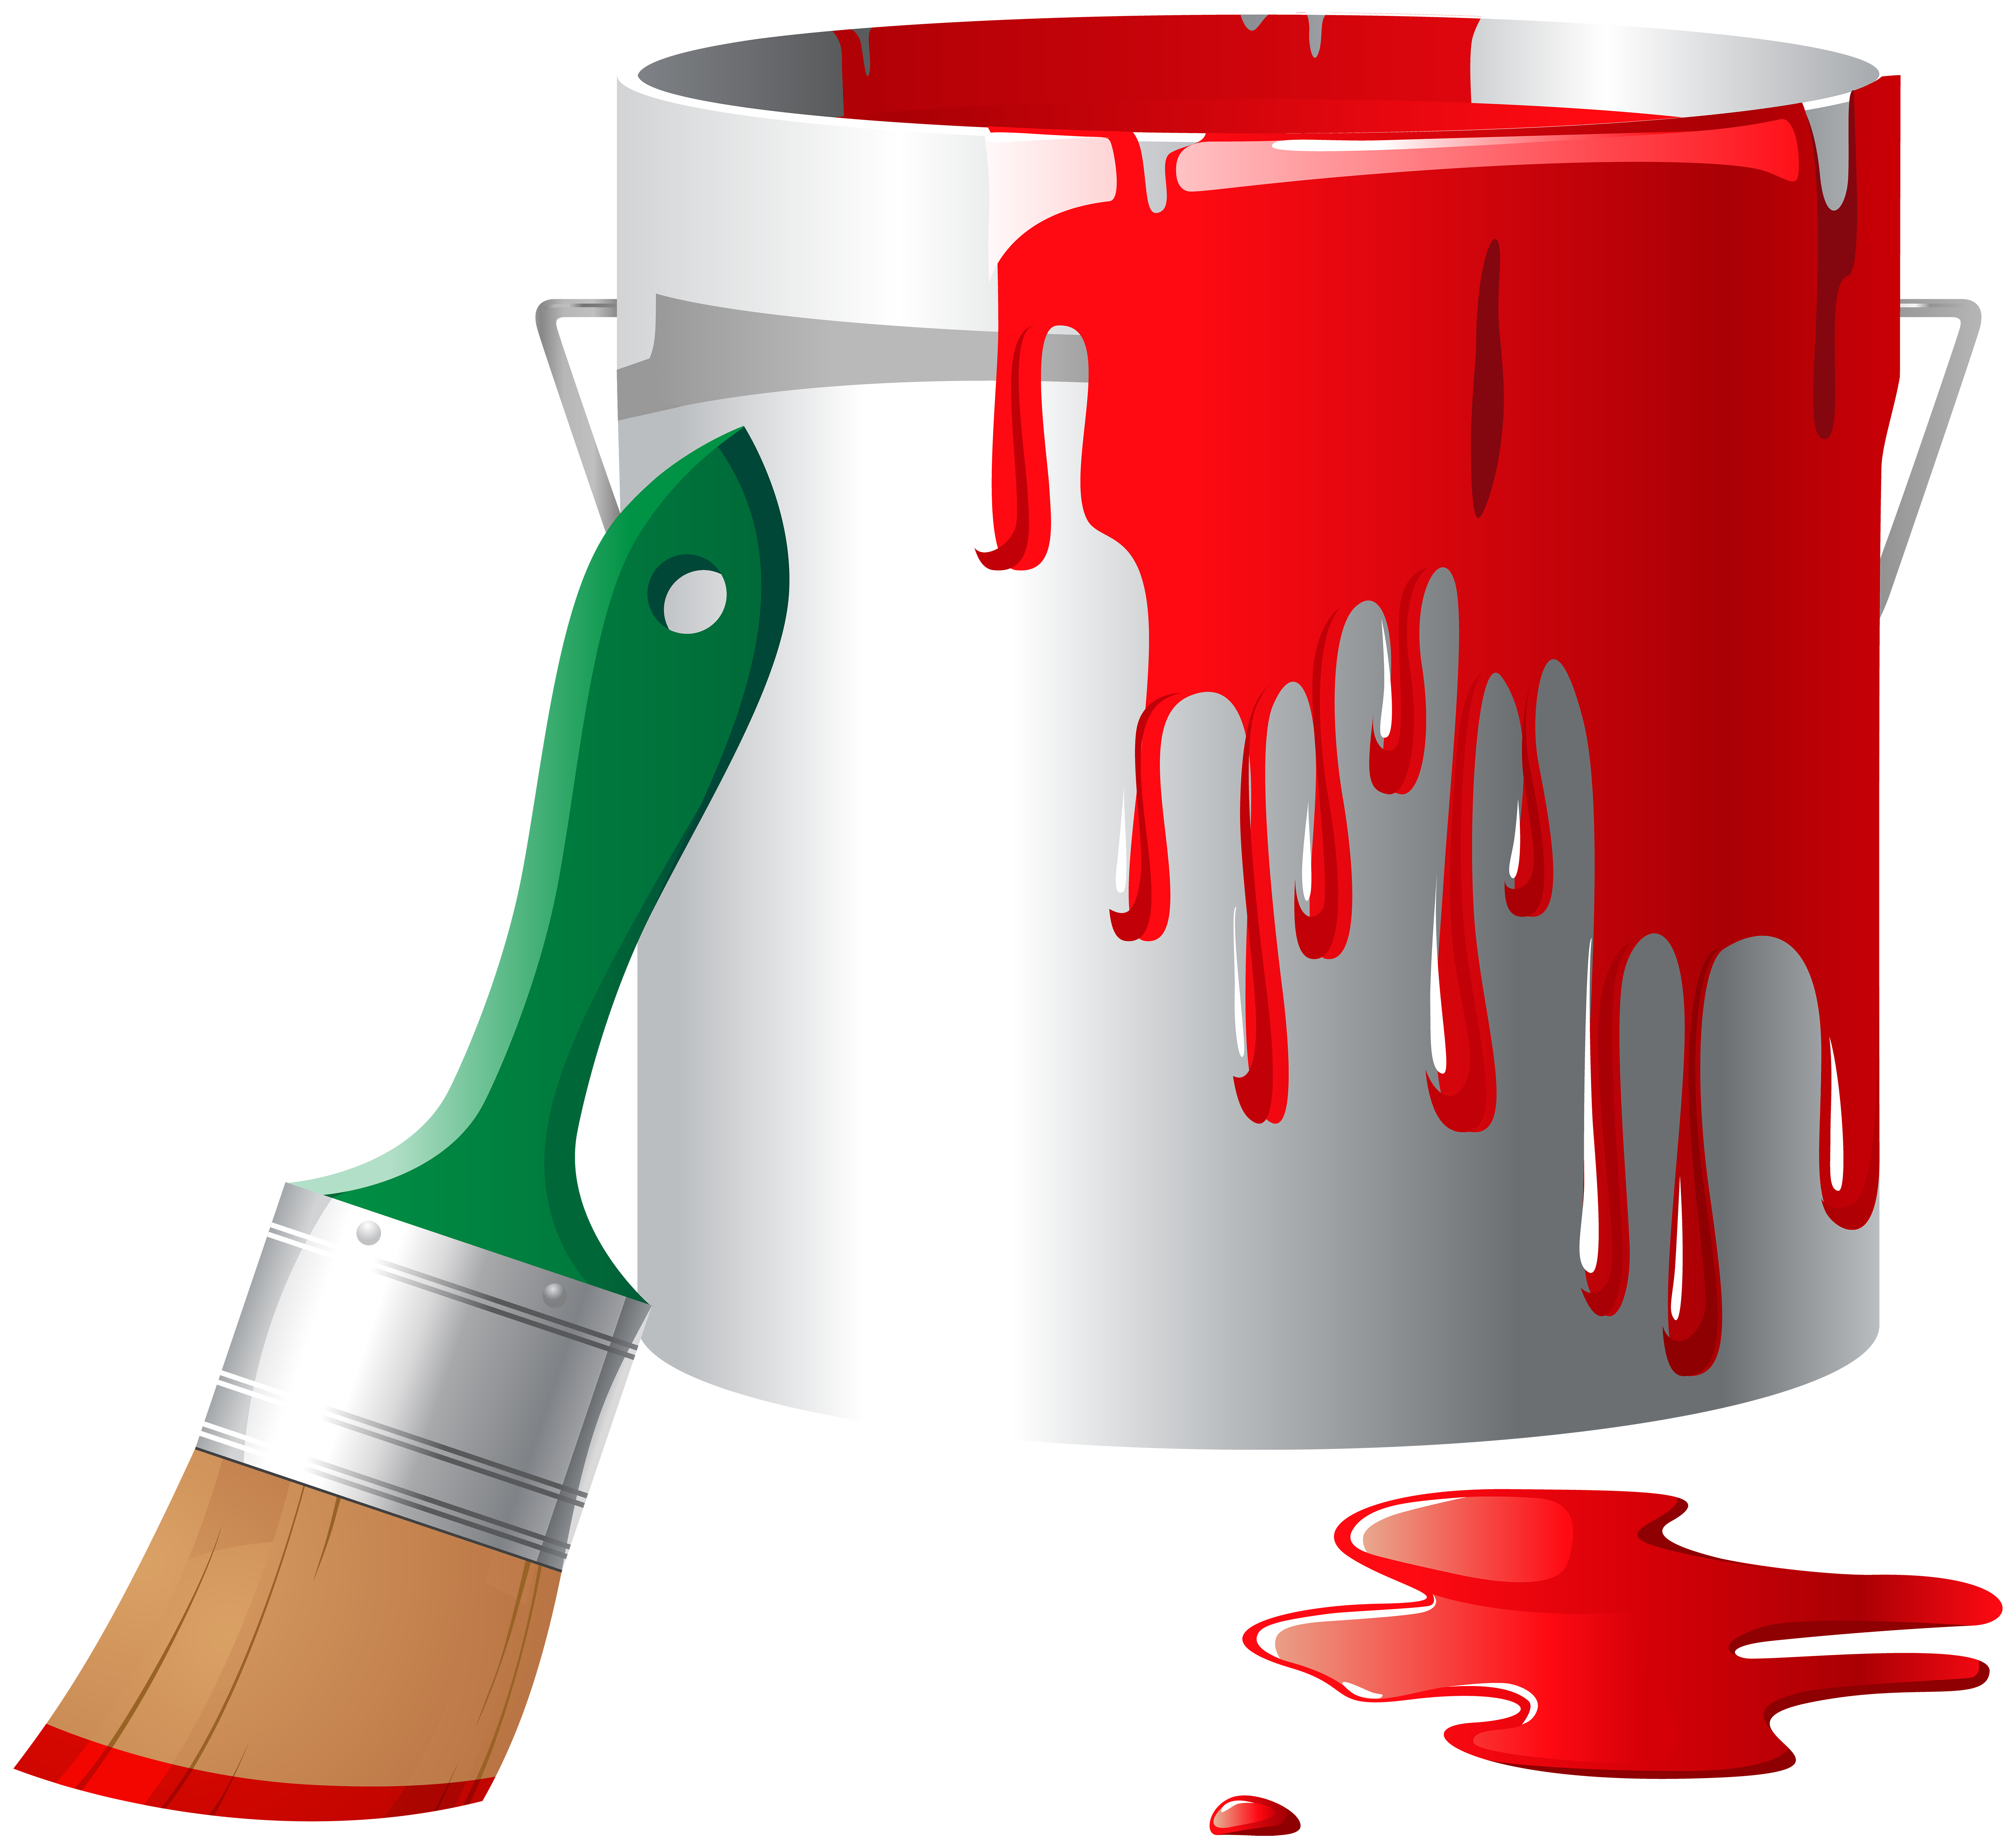 Paint buckets clipart png freeuse library Paint Bucket Png & Free Paint Bucket.png Transparent Images #27082 ... png freeuse library